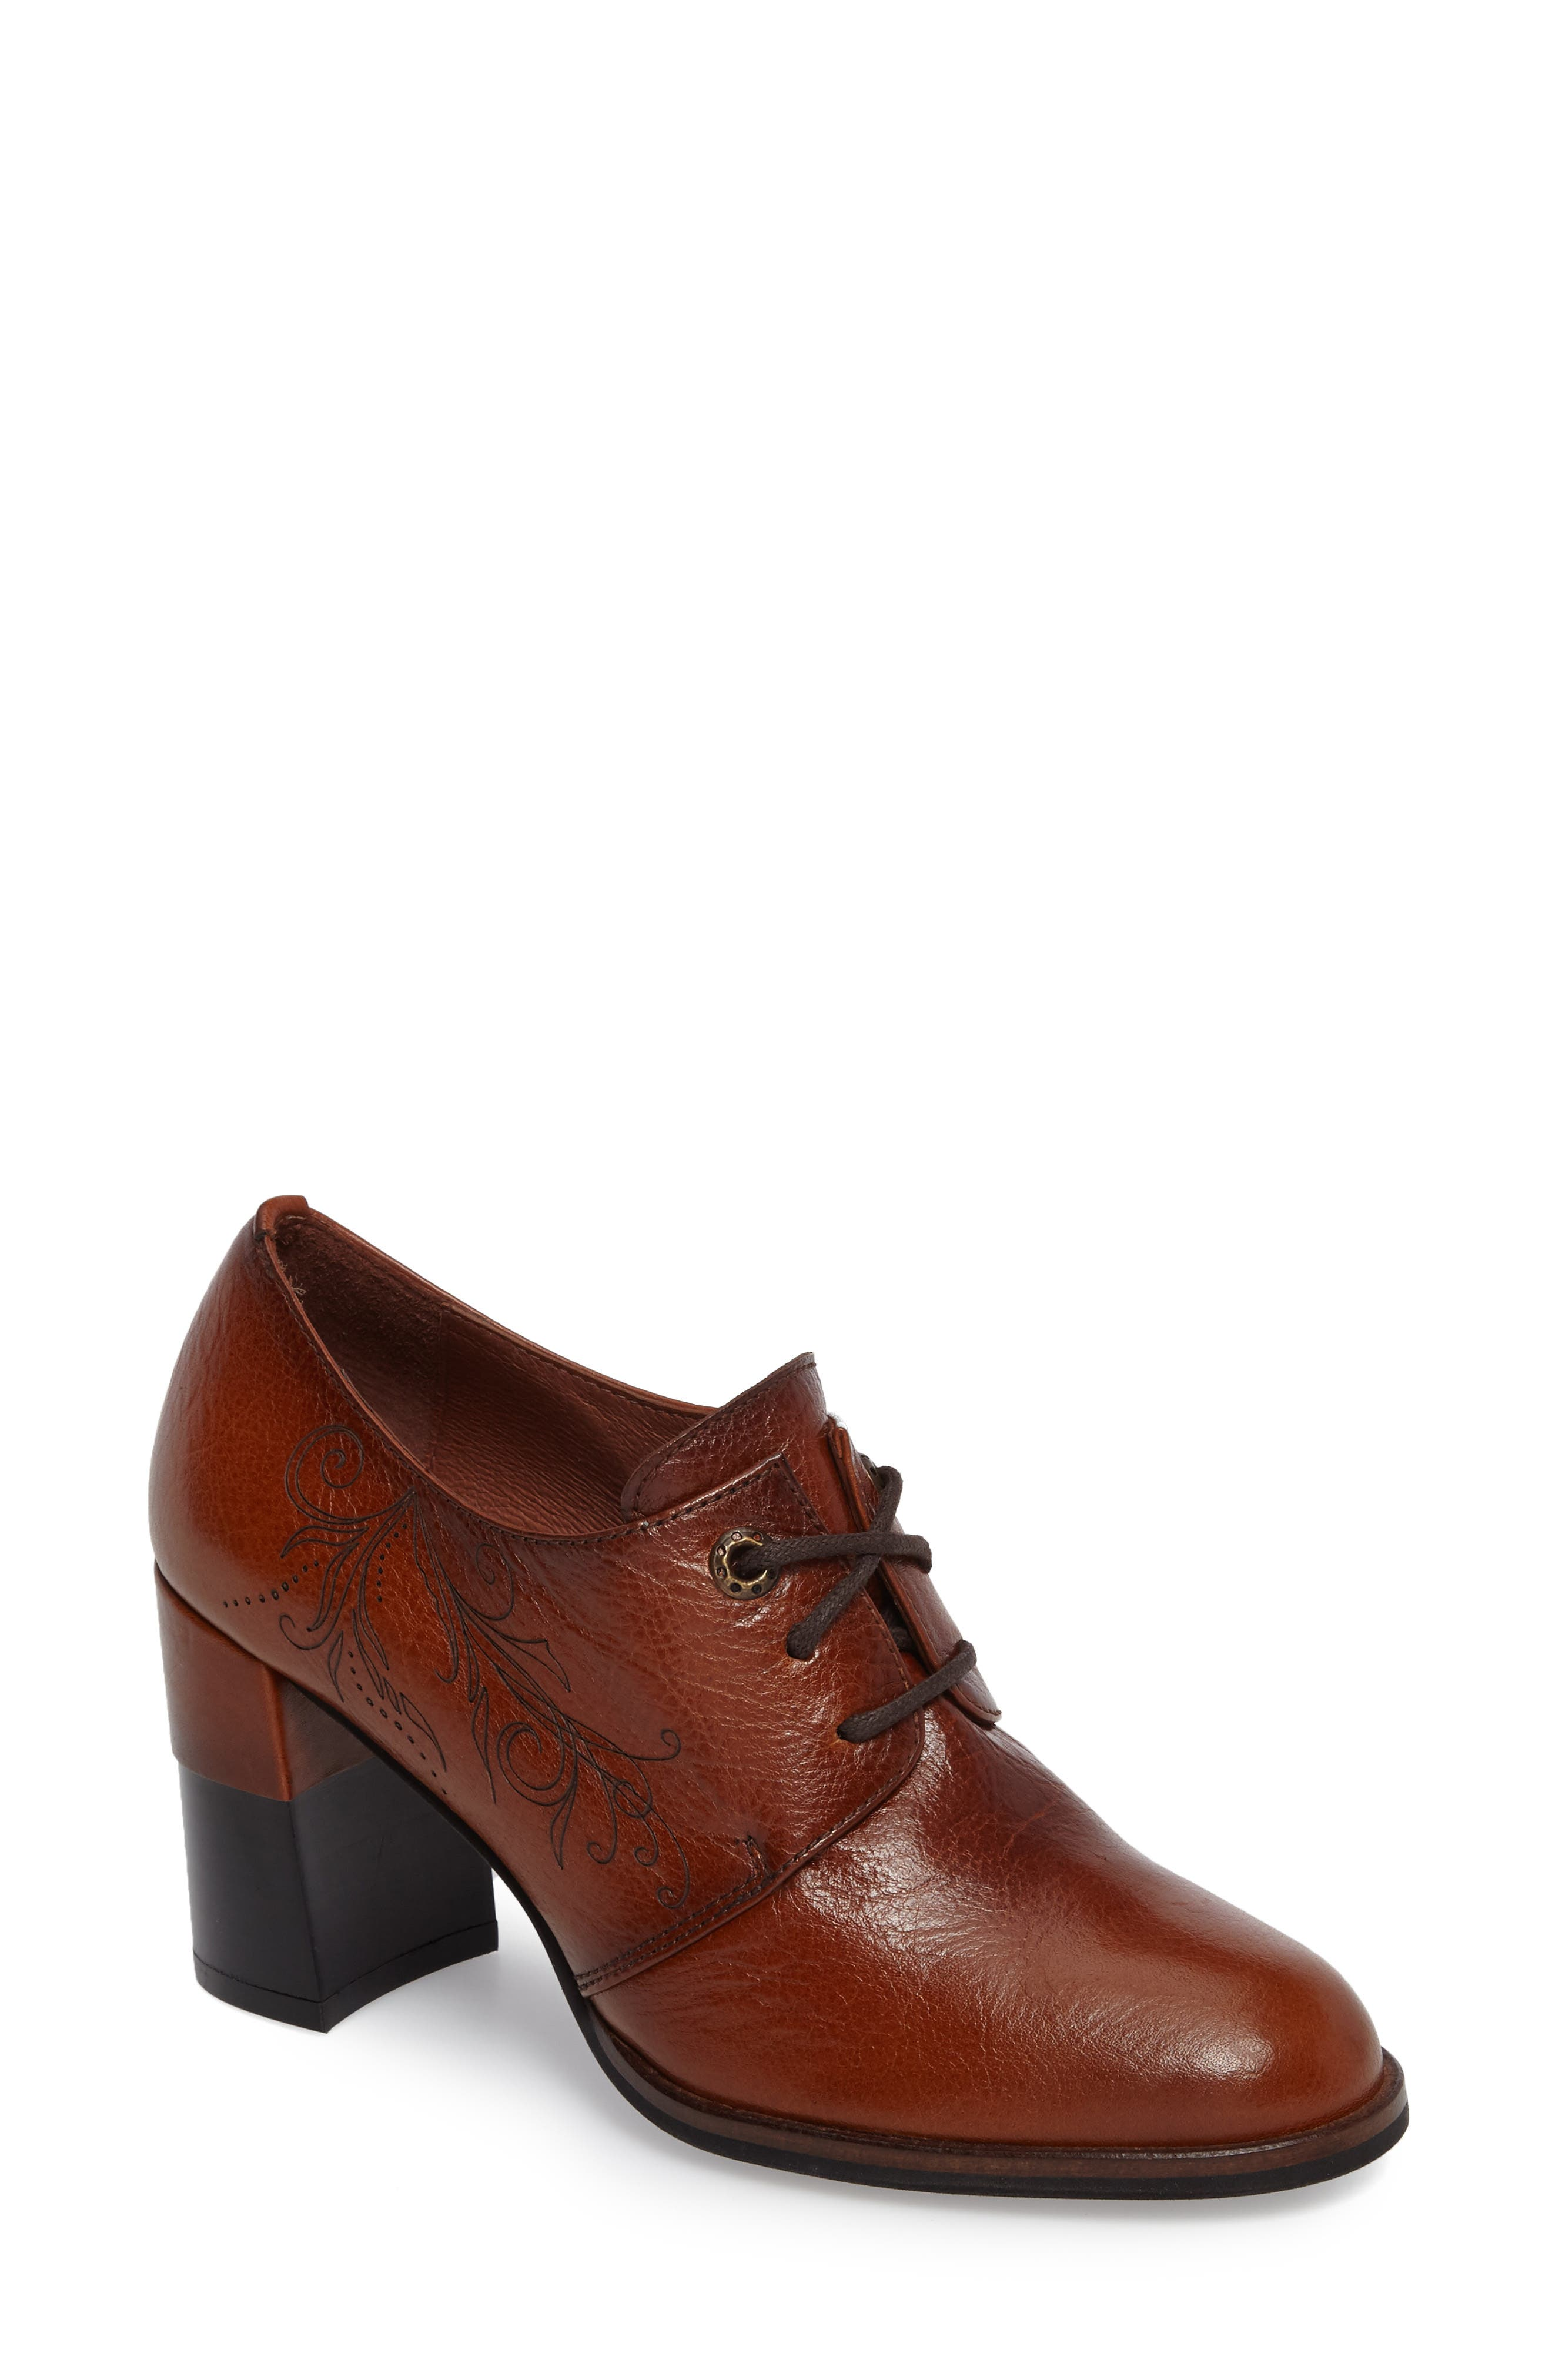 Alternate Image 1 Selected - Hispanitas Hayes Lace-Up Pump (Women)